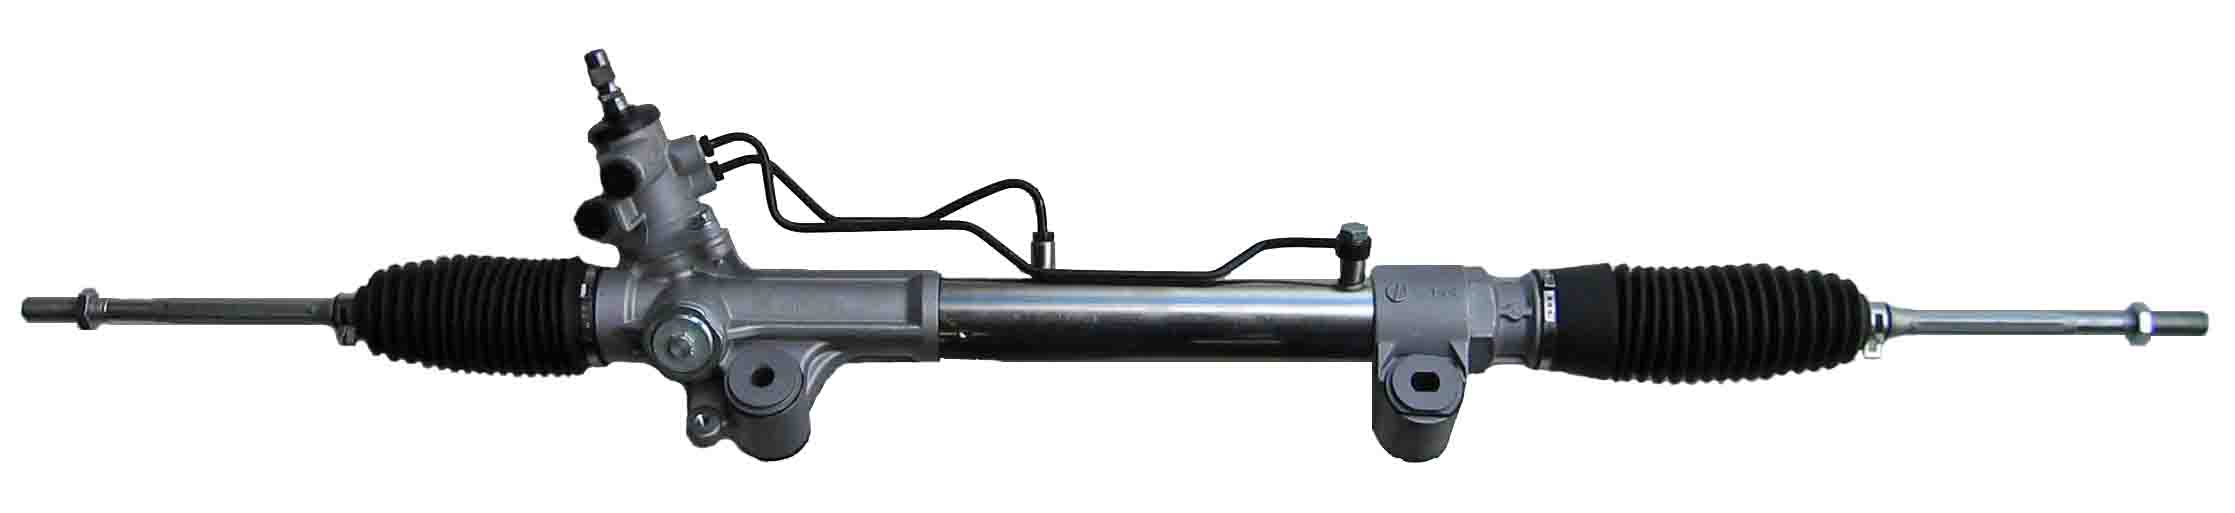 toyota-hilux-kun26-series-new-power-steering-rack-ultimate-power-steering.jpg